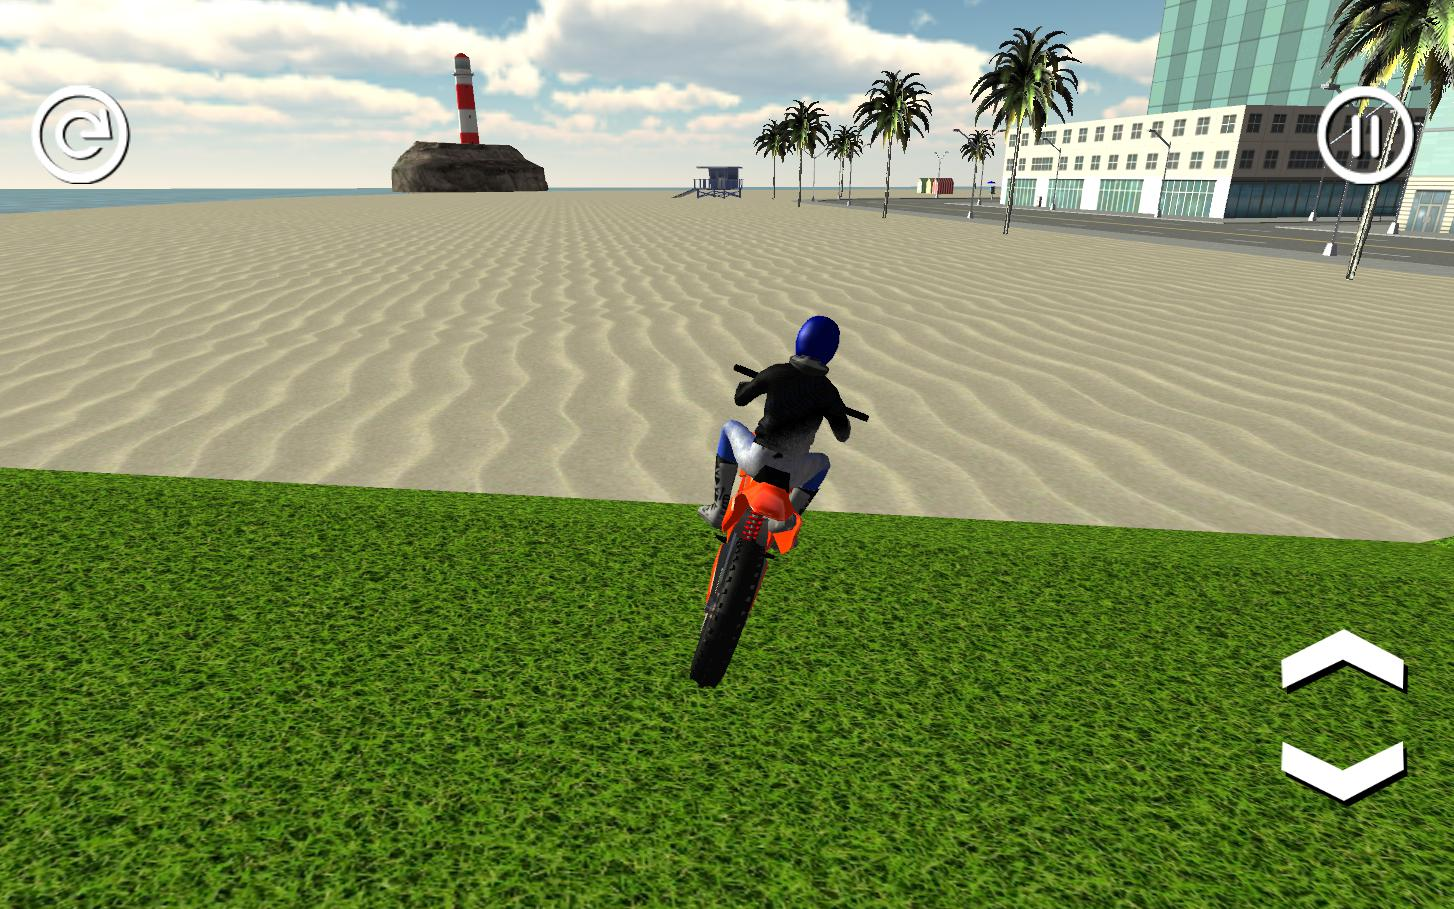 Motocross Open World Driving 游戏截图2